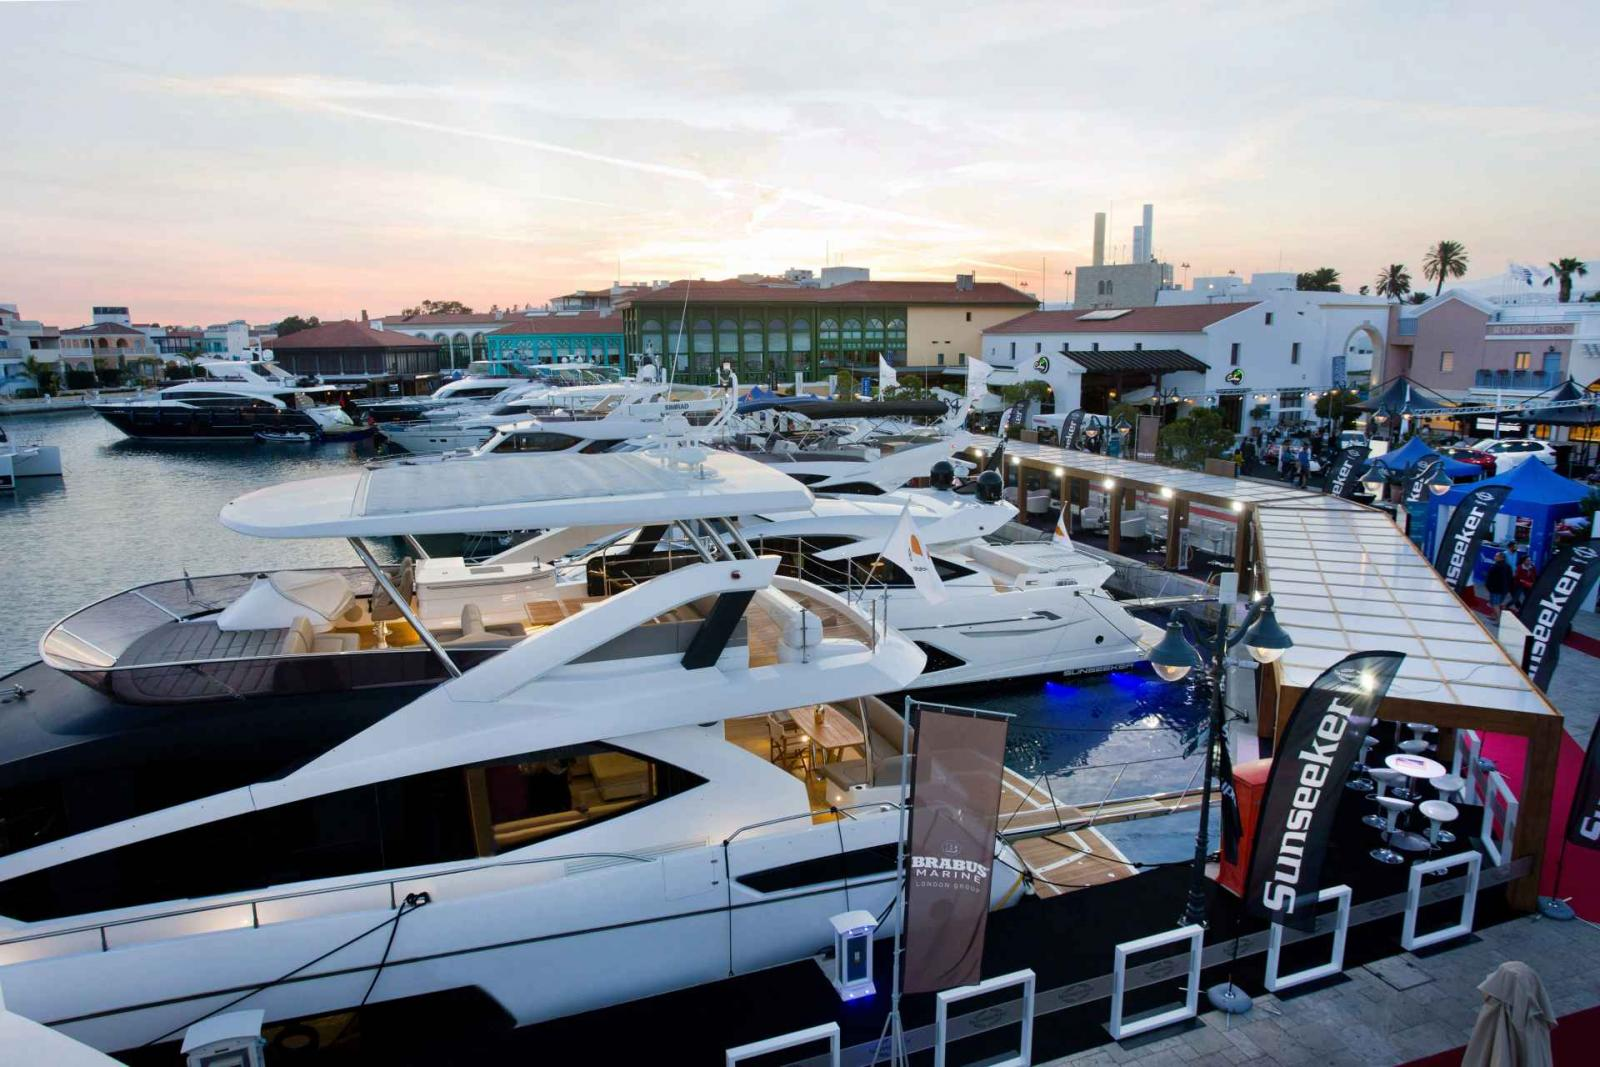 Limassol Boat Show